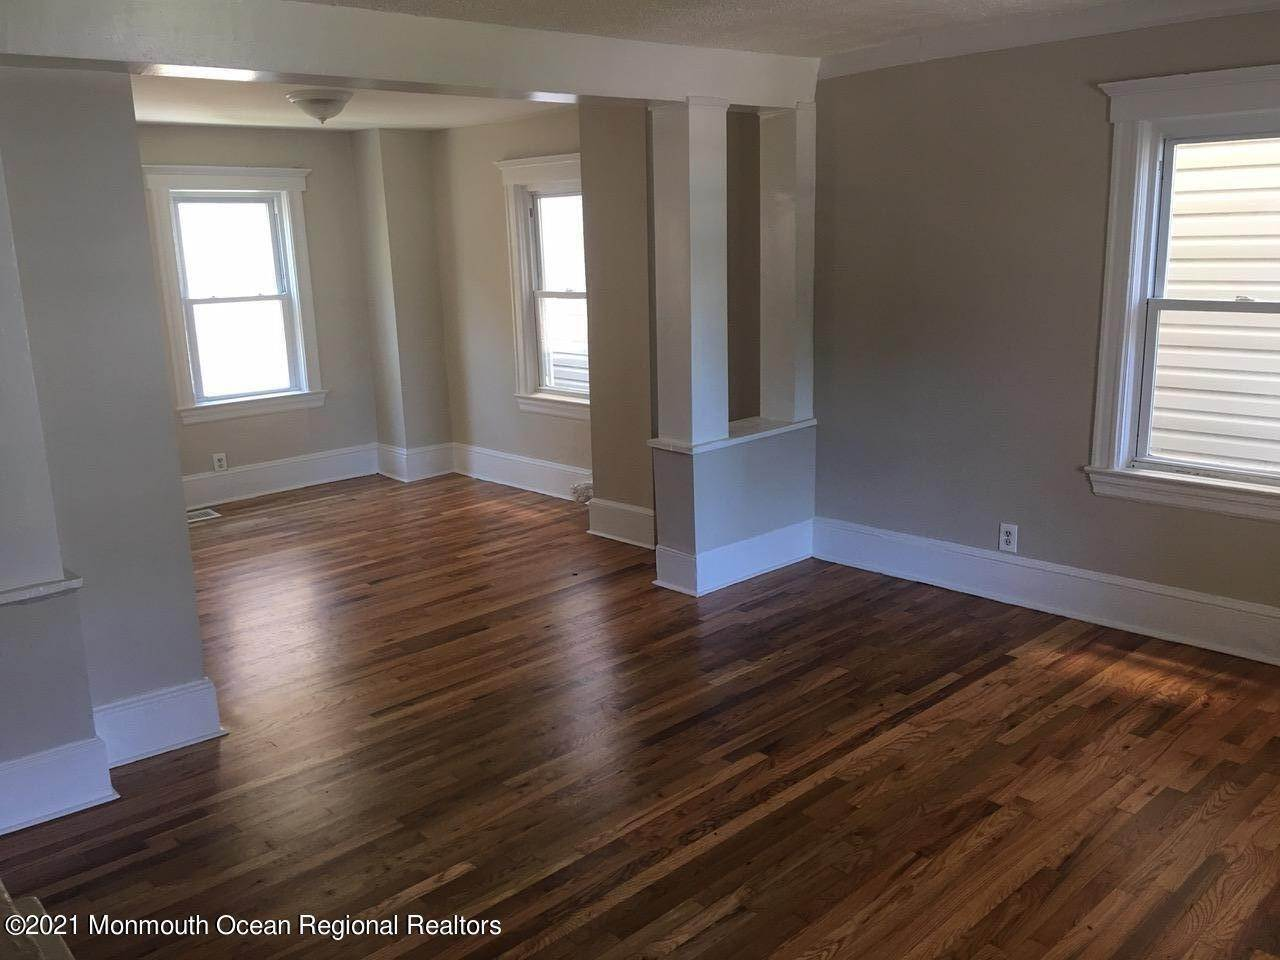 2. Single Family Homes for Sale at 303 Comstock Street Asbury Park, New Jersey 07712 United States